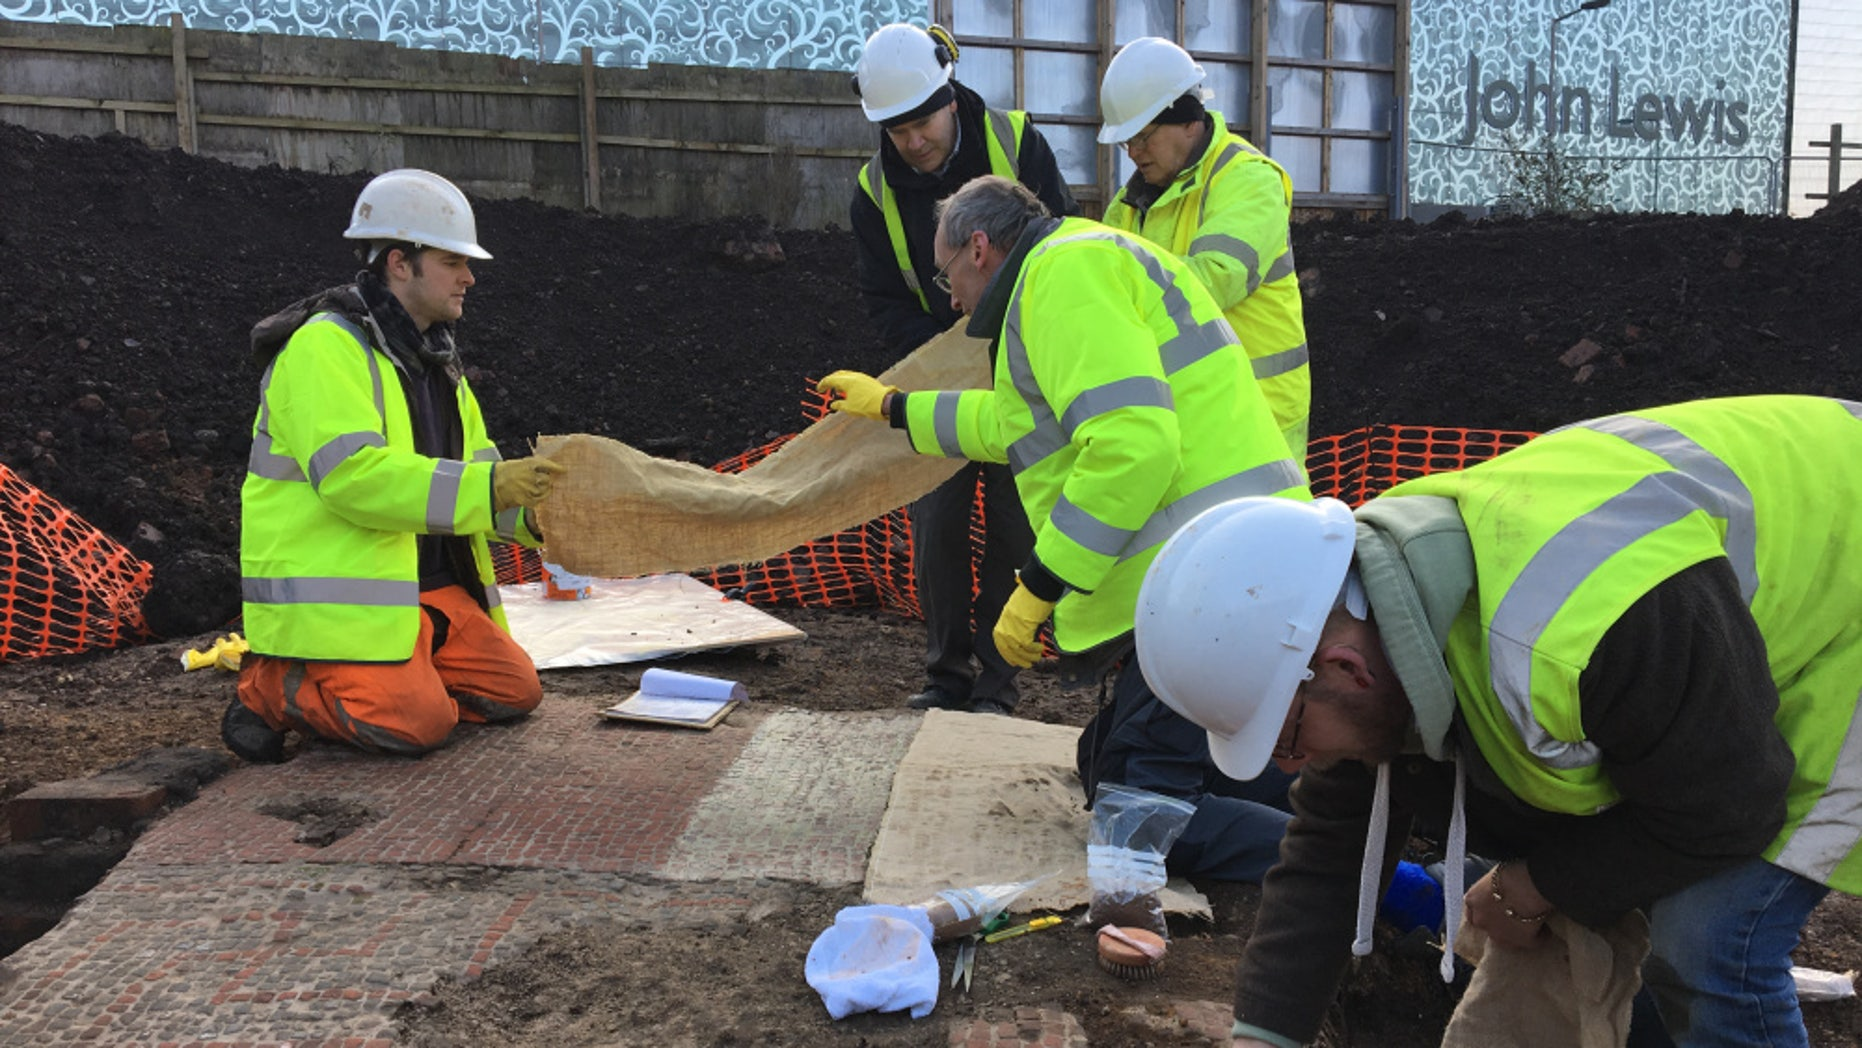 The team of conservators and archaeologists carefully prepare to lift the mosaic. (ULAS)